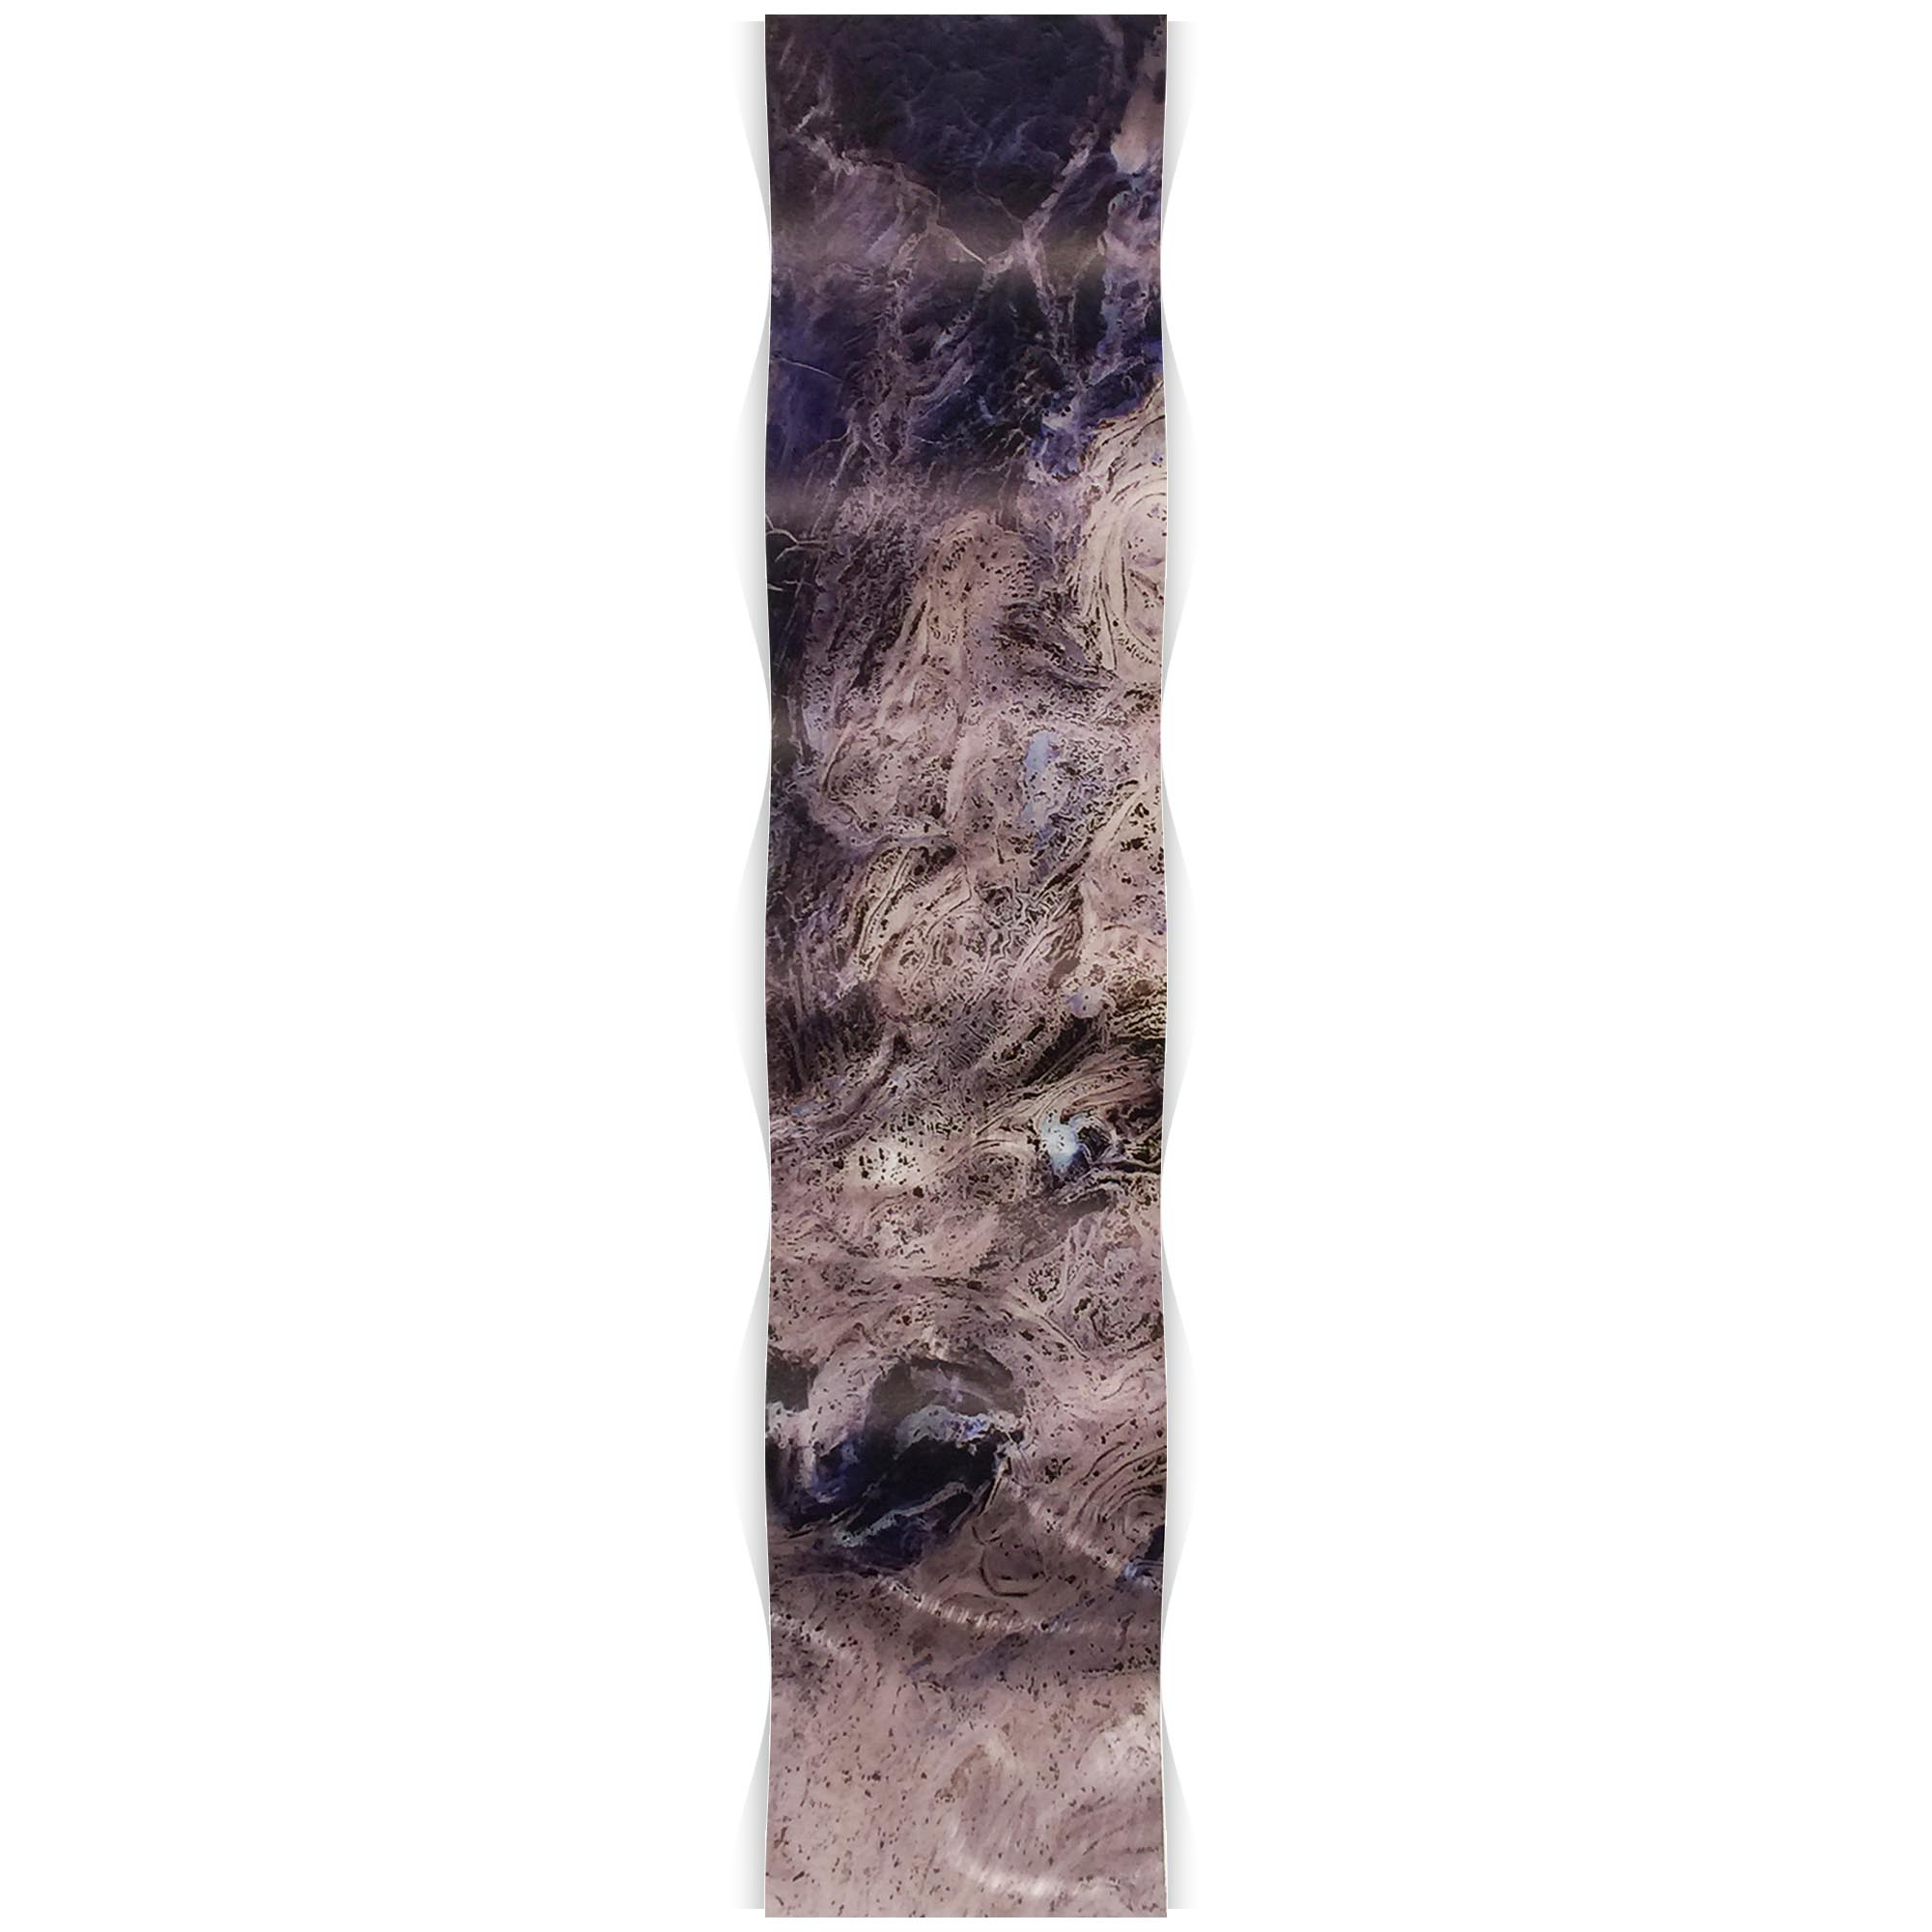 Storm Blue Wave 9.5x44in. Metal Eclectic Decor - Image 2